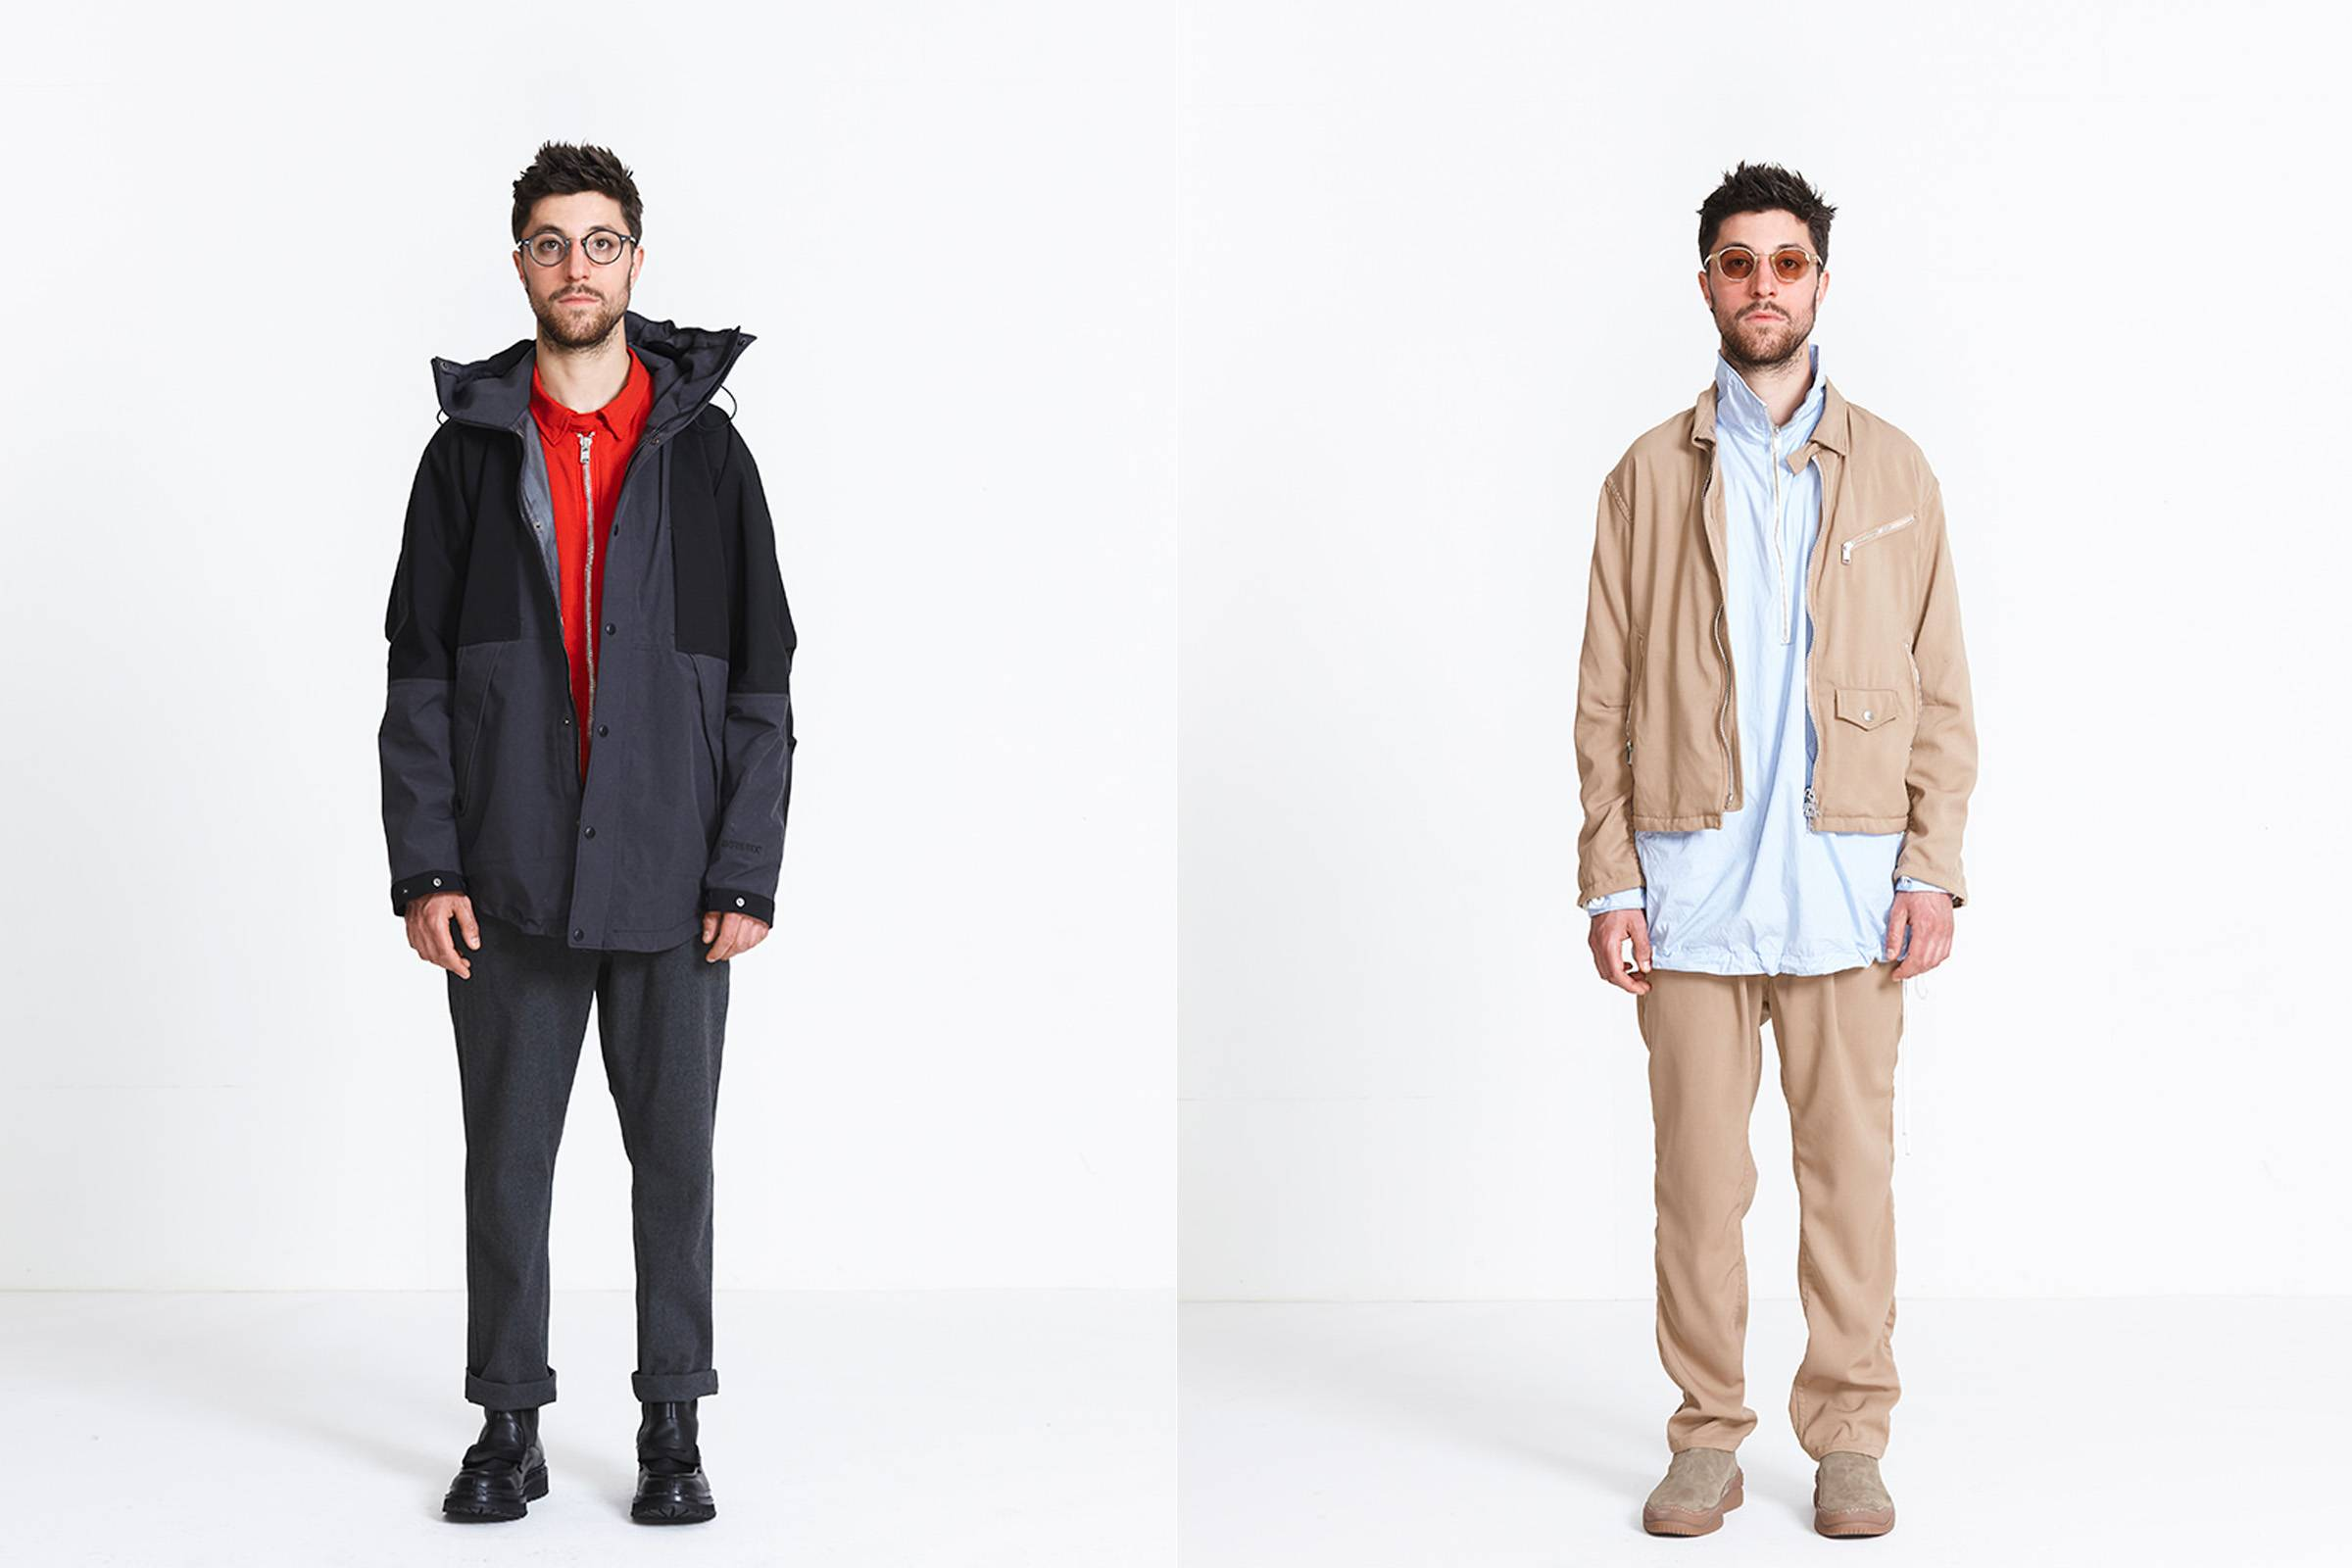 Looks from Nonnative's Fall/Winter 2018 collection